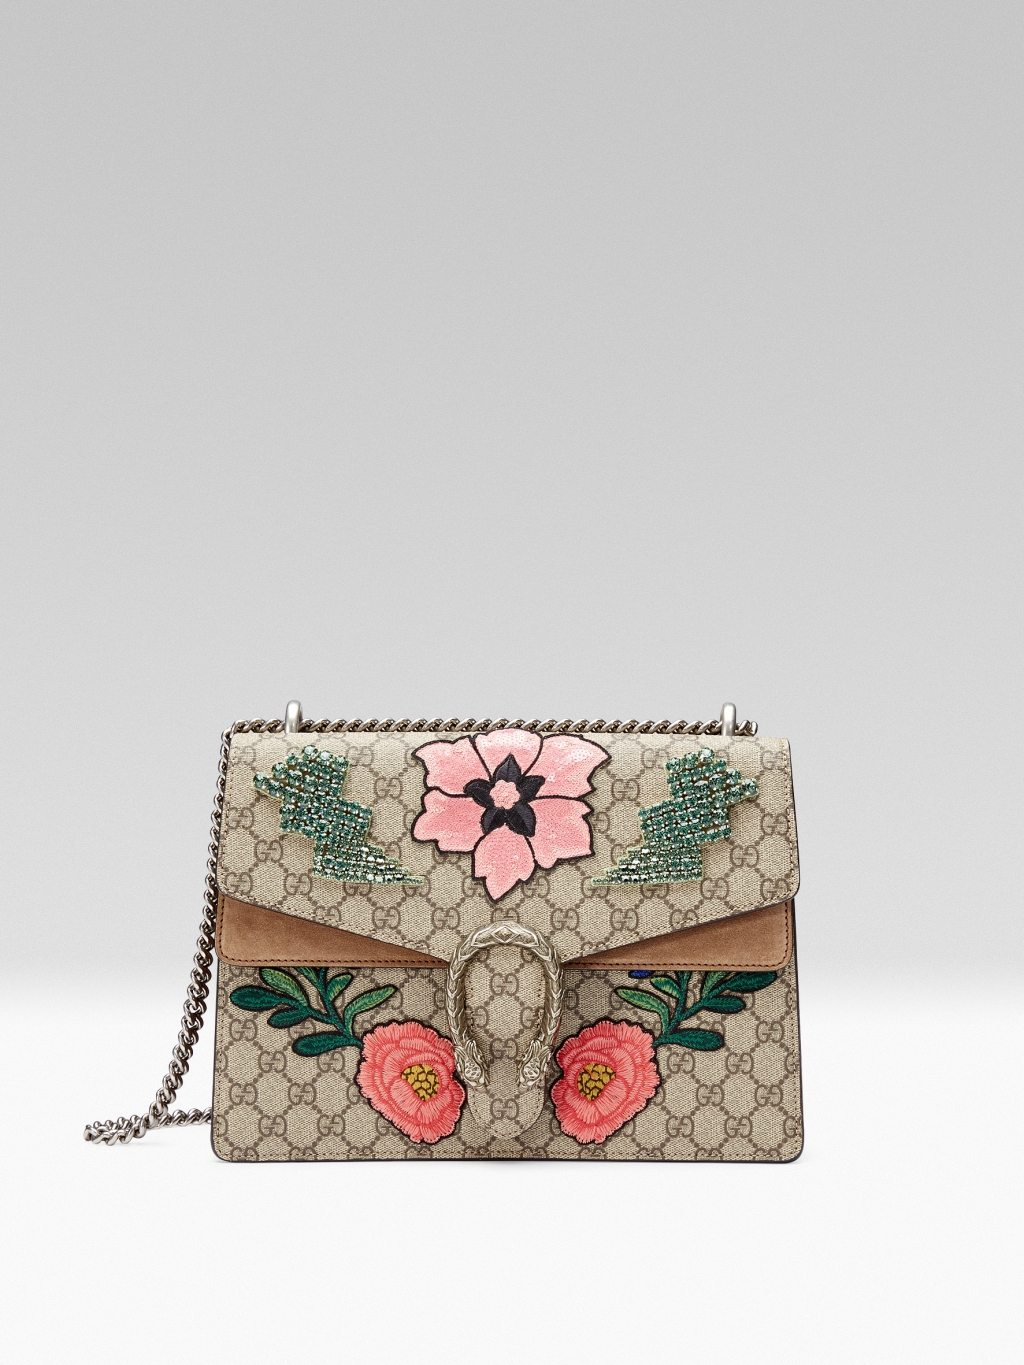 Gucci to launch dionysus city bags dedicated to 8 cities